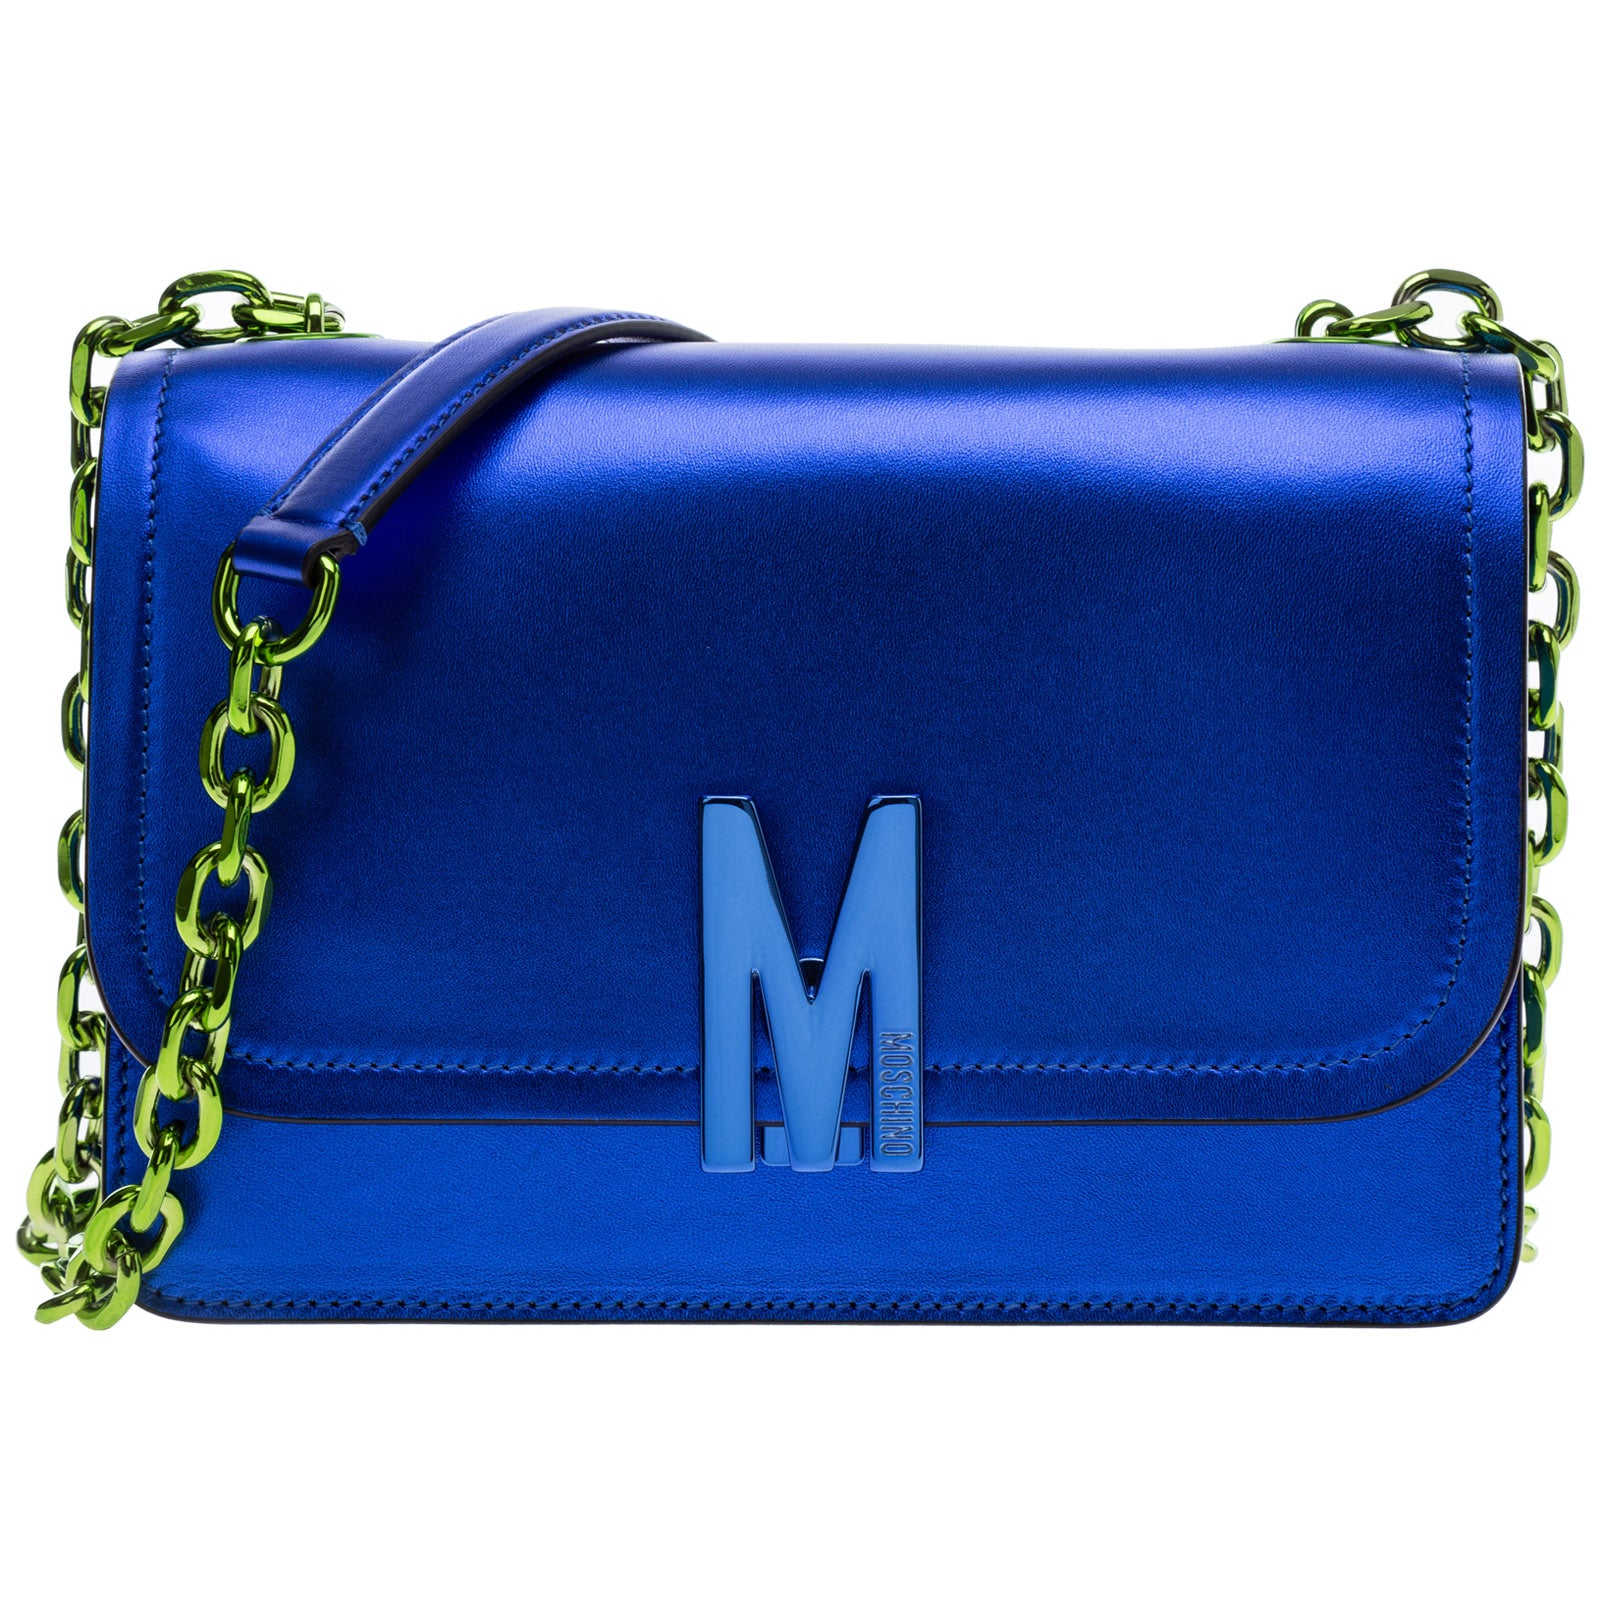 Moschino Shoulder bags MOSCHINO M PLAQUE SHOULDER BAG